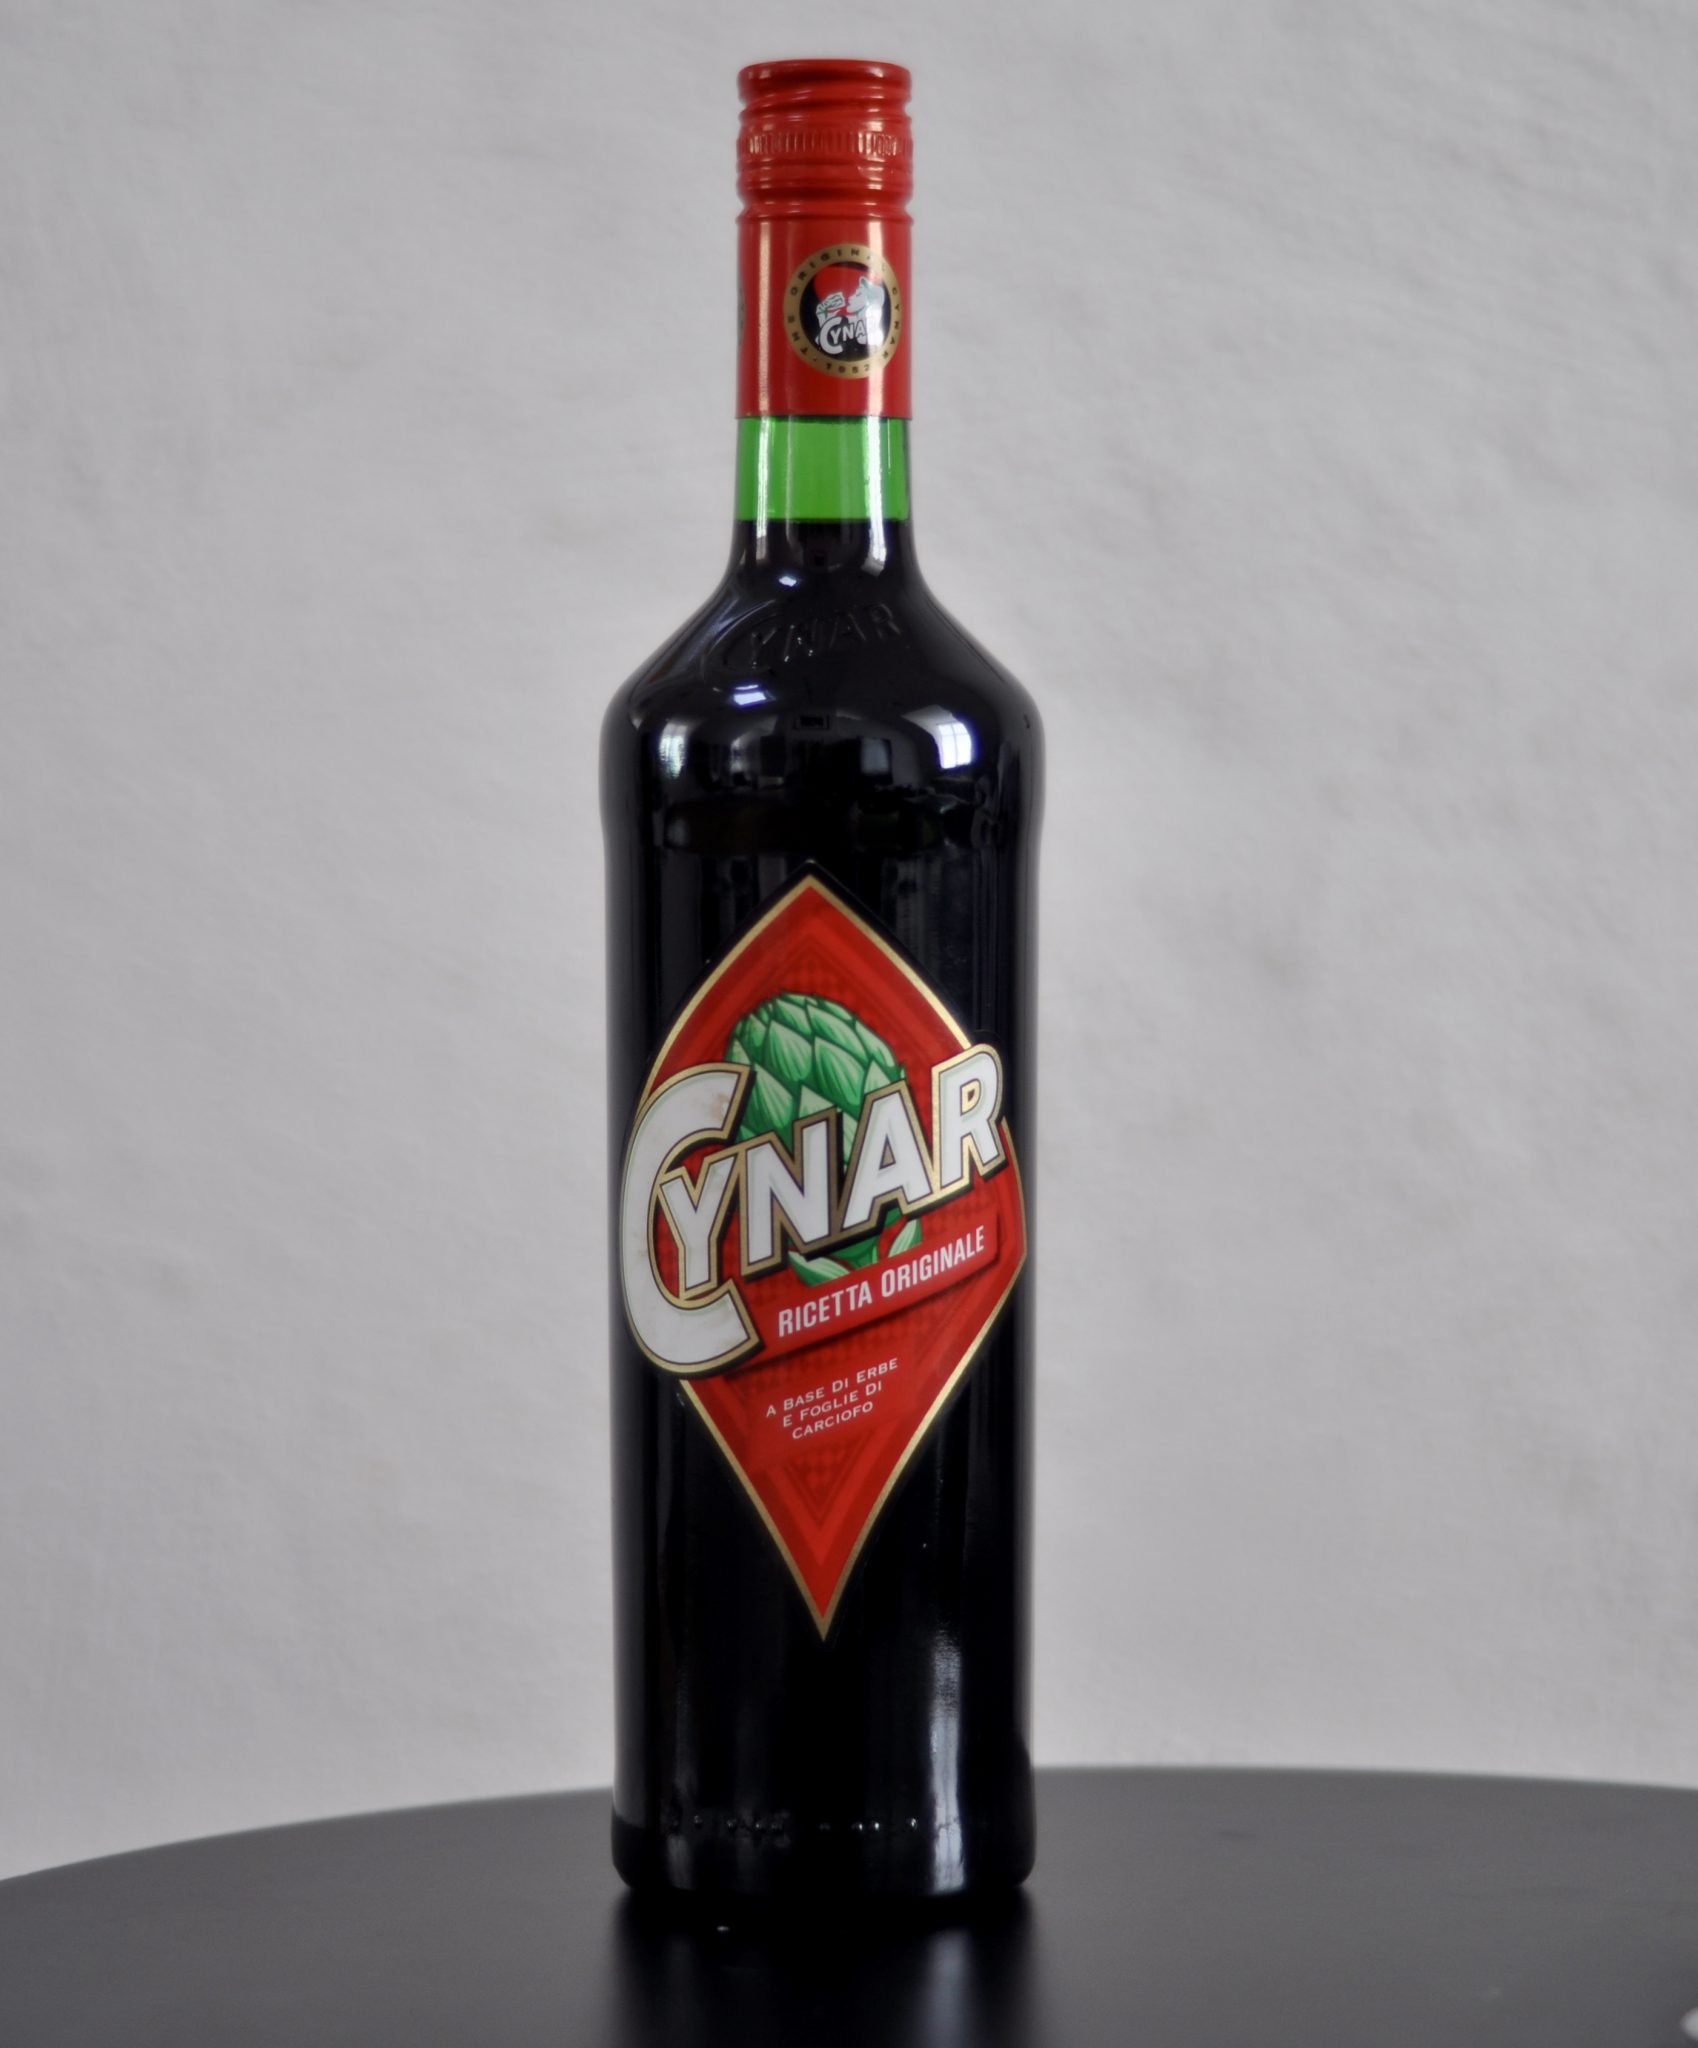 A bottle of Cynar